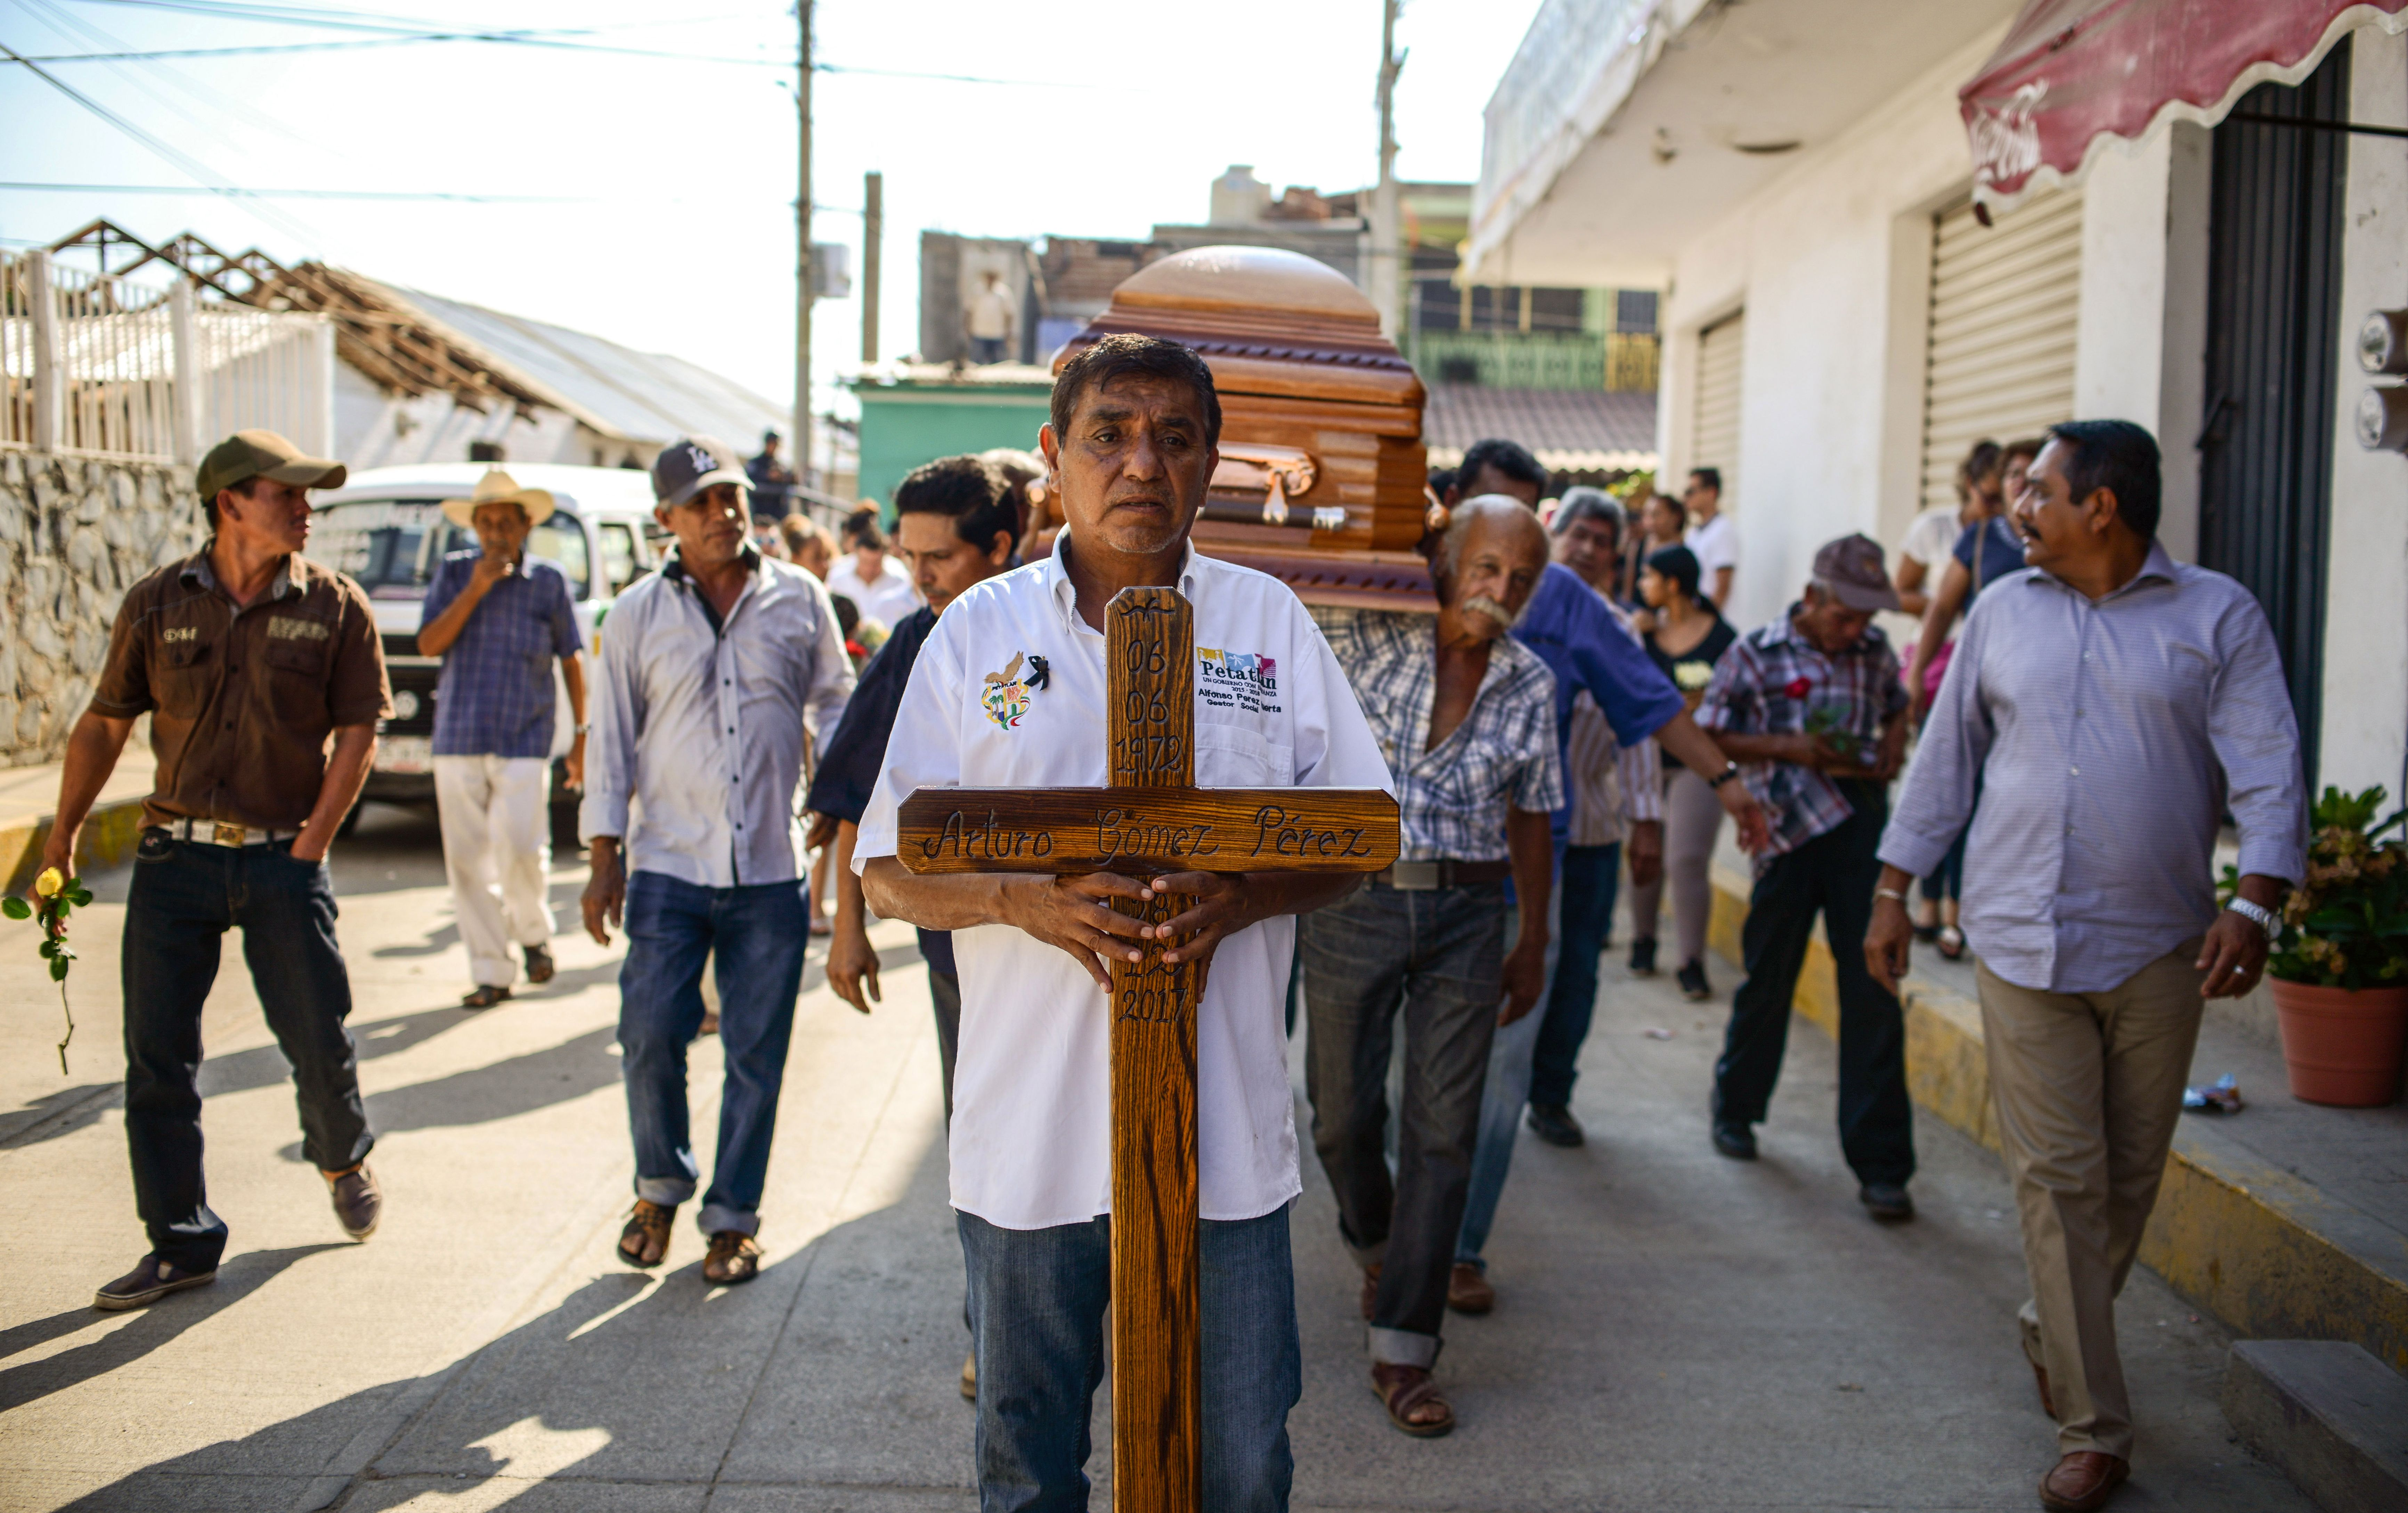 Relatives and friends of the mayor of the Mexican community of Petatlan, Arturo Gomez, carry his coffin during his funeral in Petatlan, Guerrero State, on December 29, 2017 a day after he was shot dead while dining at a restaurant.                     An armed group killed mayor Gomez in the convulsed state of Guerrero in southern Mexico, according to the security spokesman for the Guerrero government Roberto Alvarez.